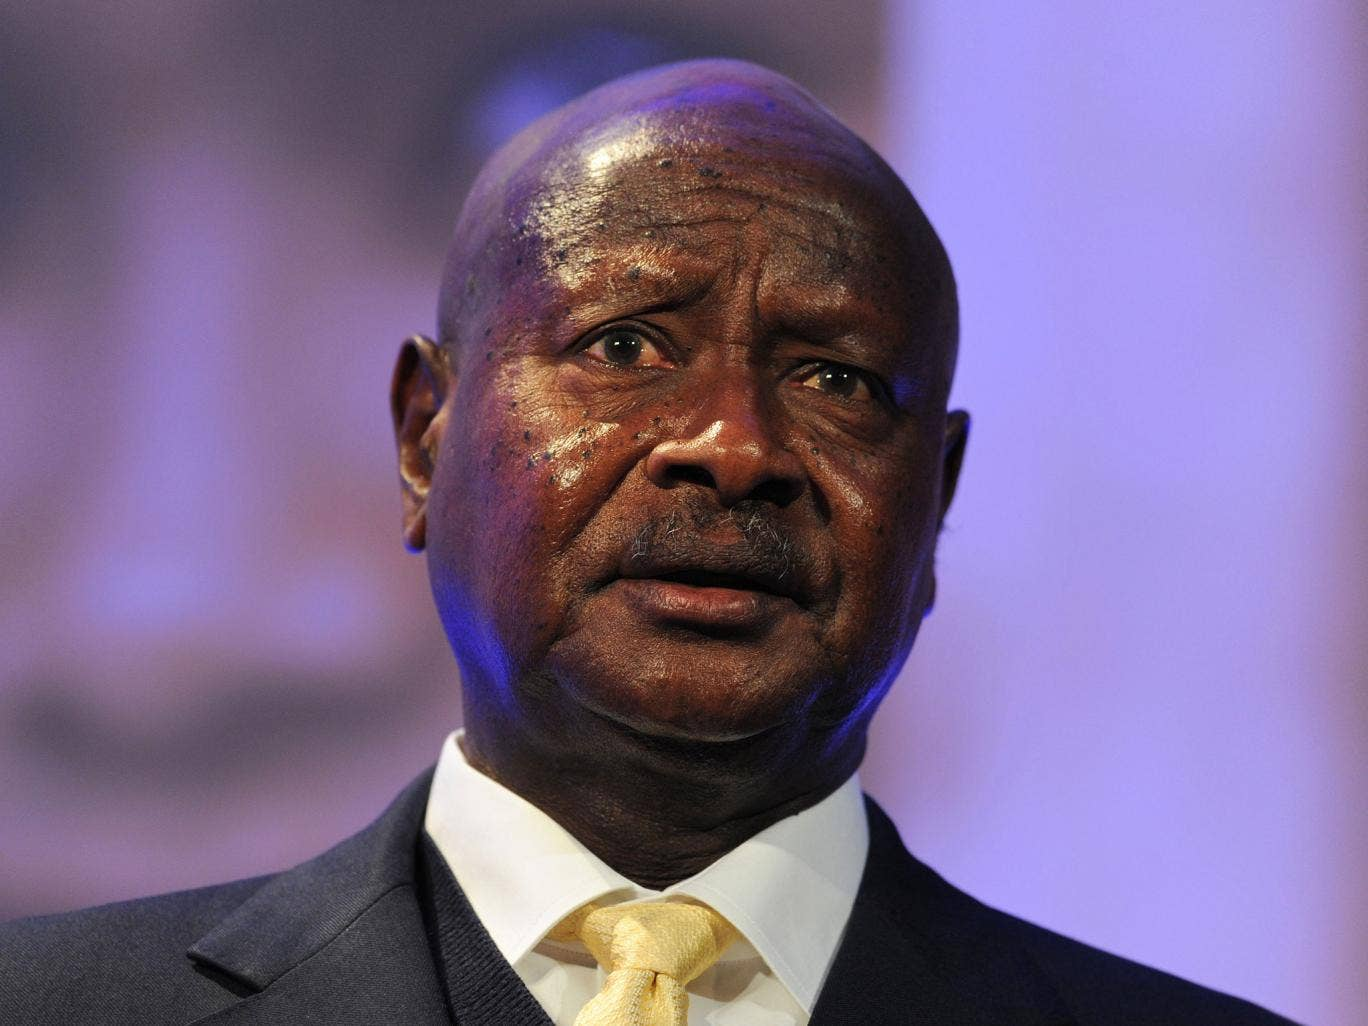 The manhunt for Sejusa has been seized upon by opponents of the Ugandan president Yoweri Museveni, pictured, who has received extensive political and financial support from various British governments